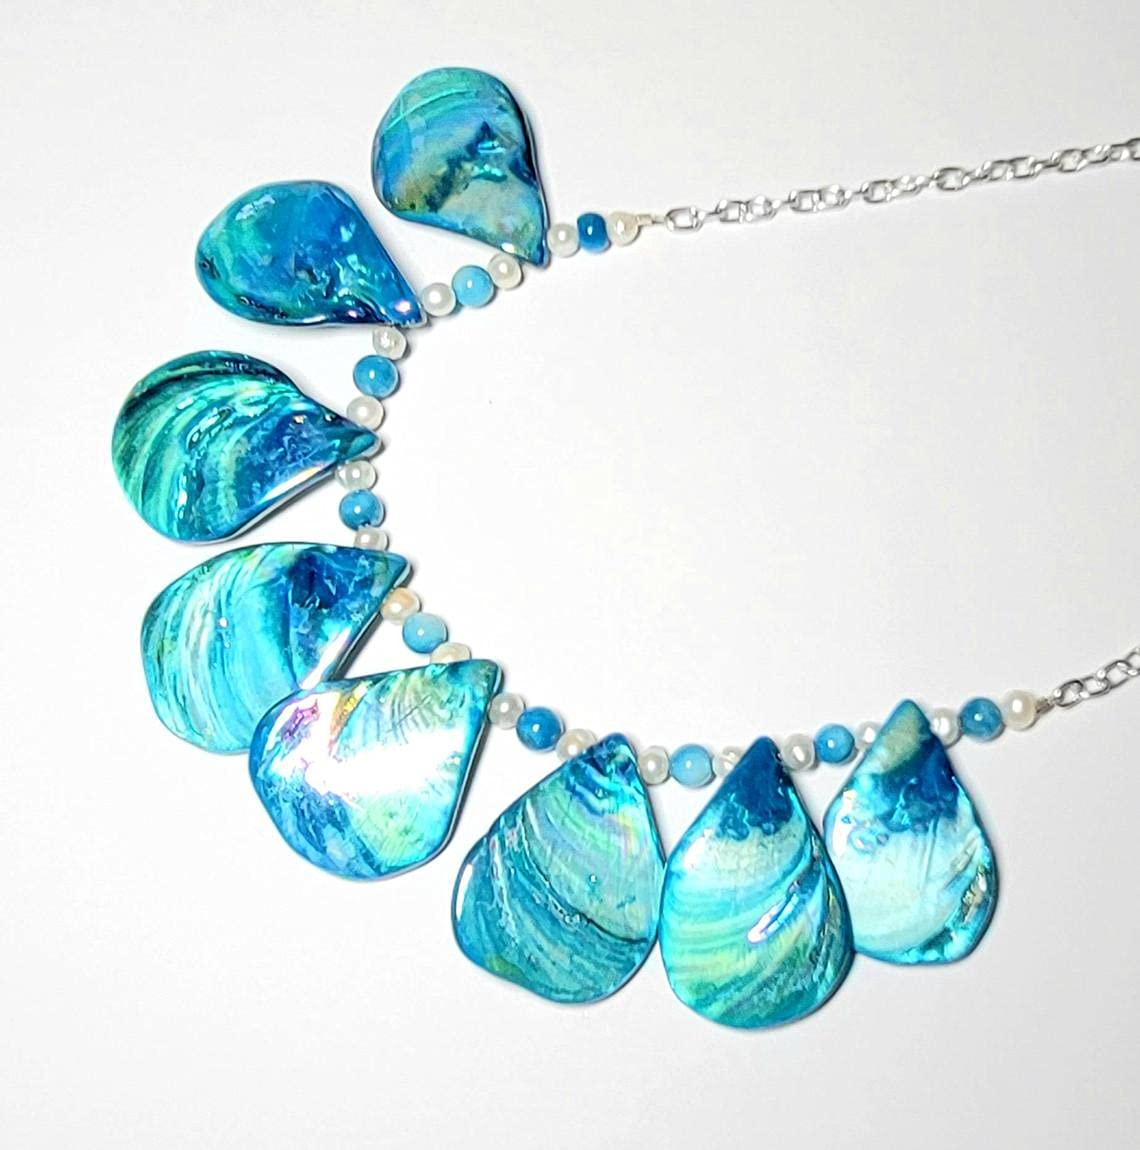 Blue Shell Challenge the lowest price of Japan Necklace Nippon regular agency Beach Jewelry for Florida Souven Gift Her